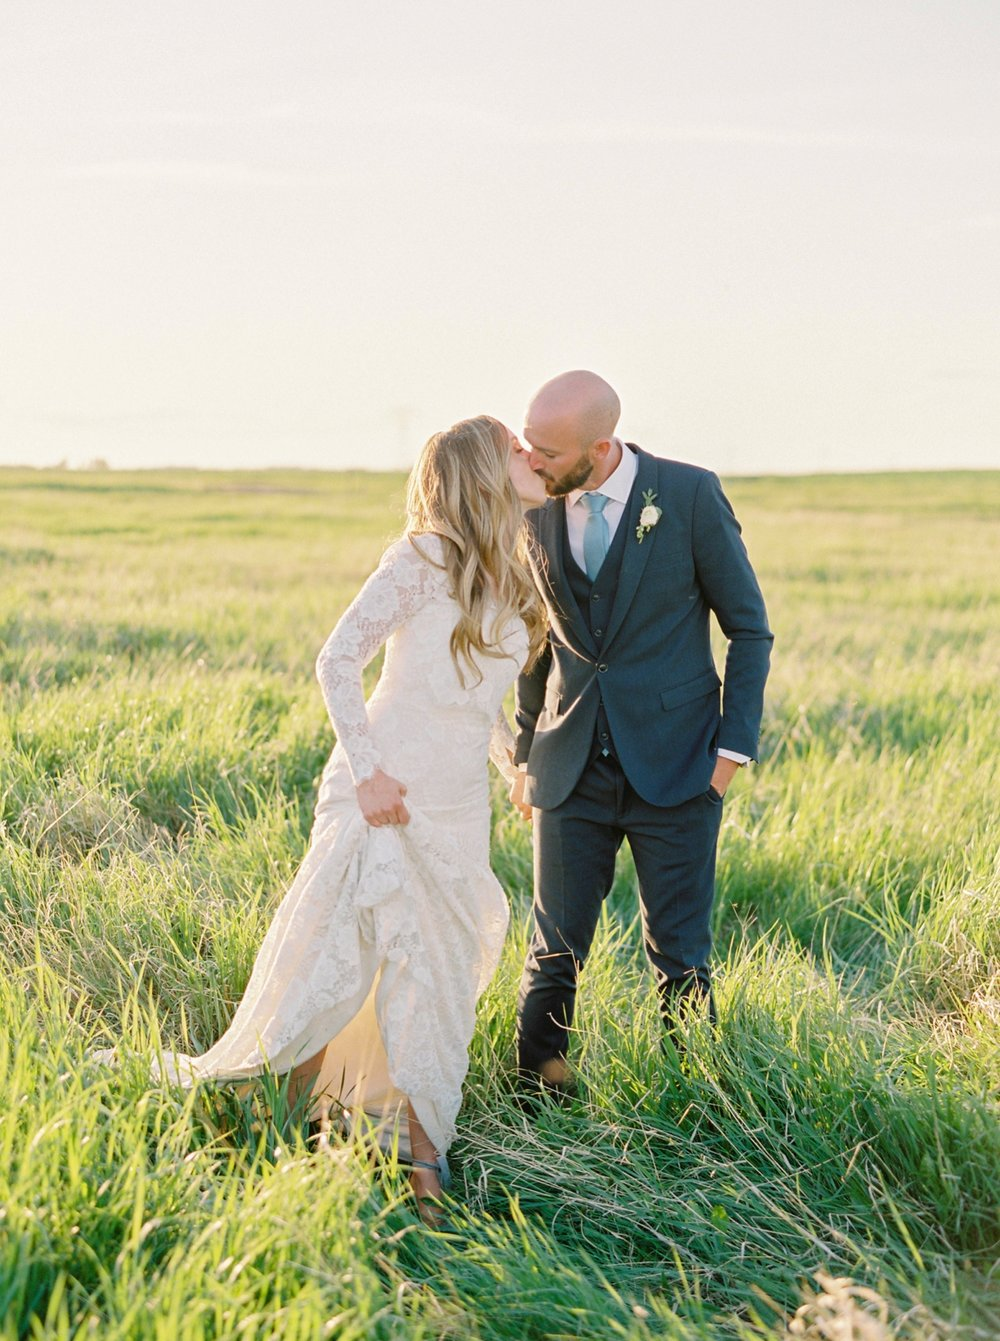 Calgary wedding photographers | The Gathered Farm Wedding | Justine milton fine art film photographer | sunset farm bride and groom portraits